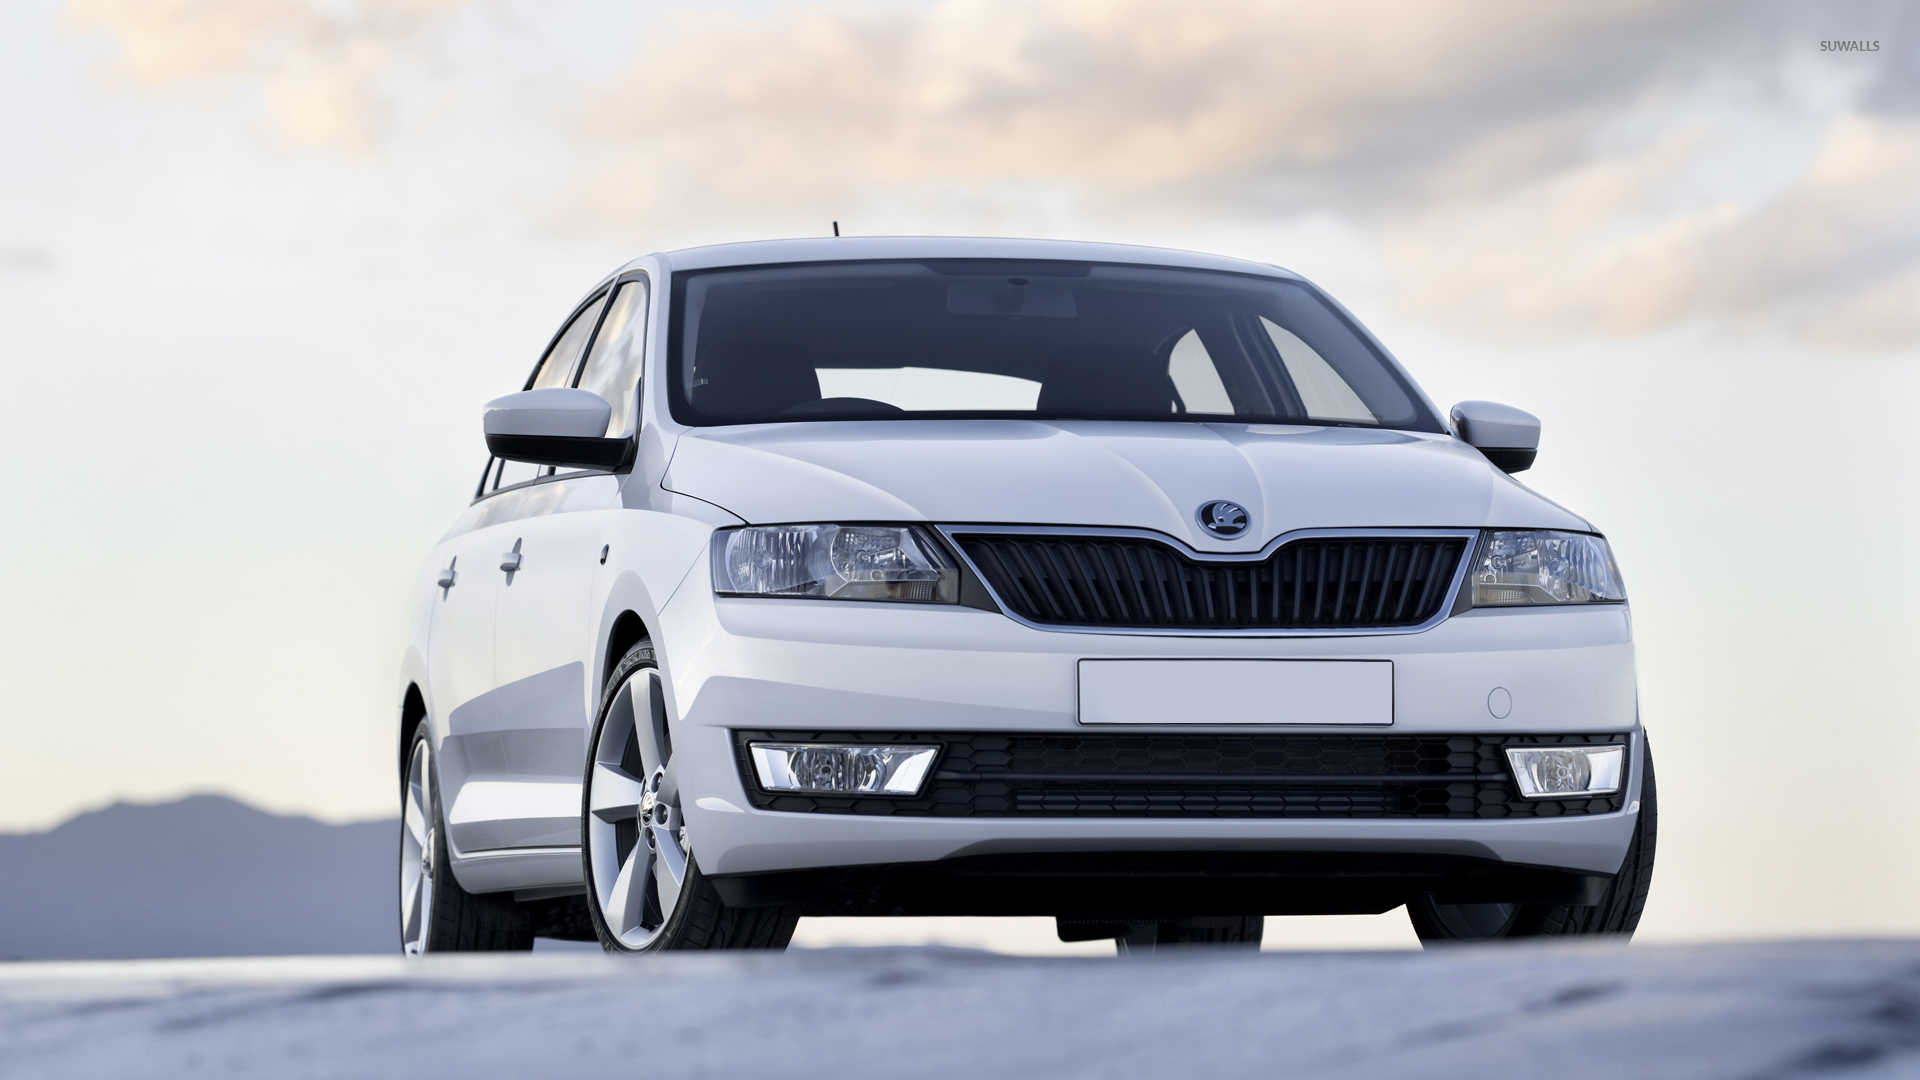 2013 White Skoda Rapid Front View Wallpaper Car Wallpapers